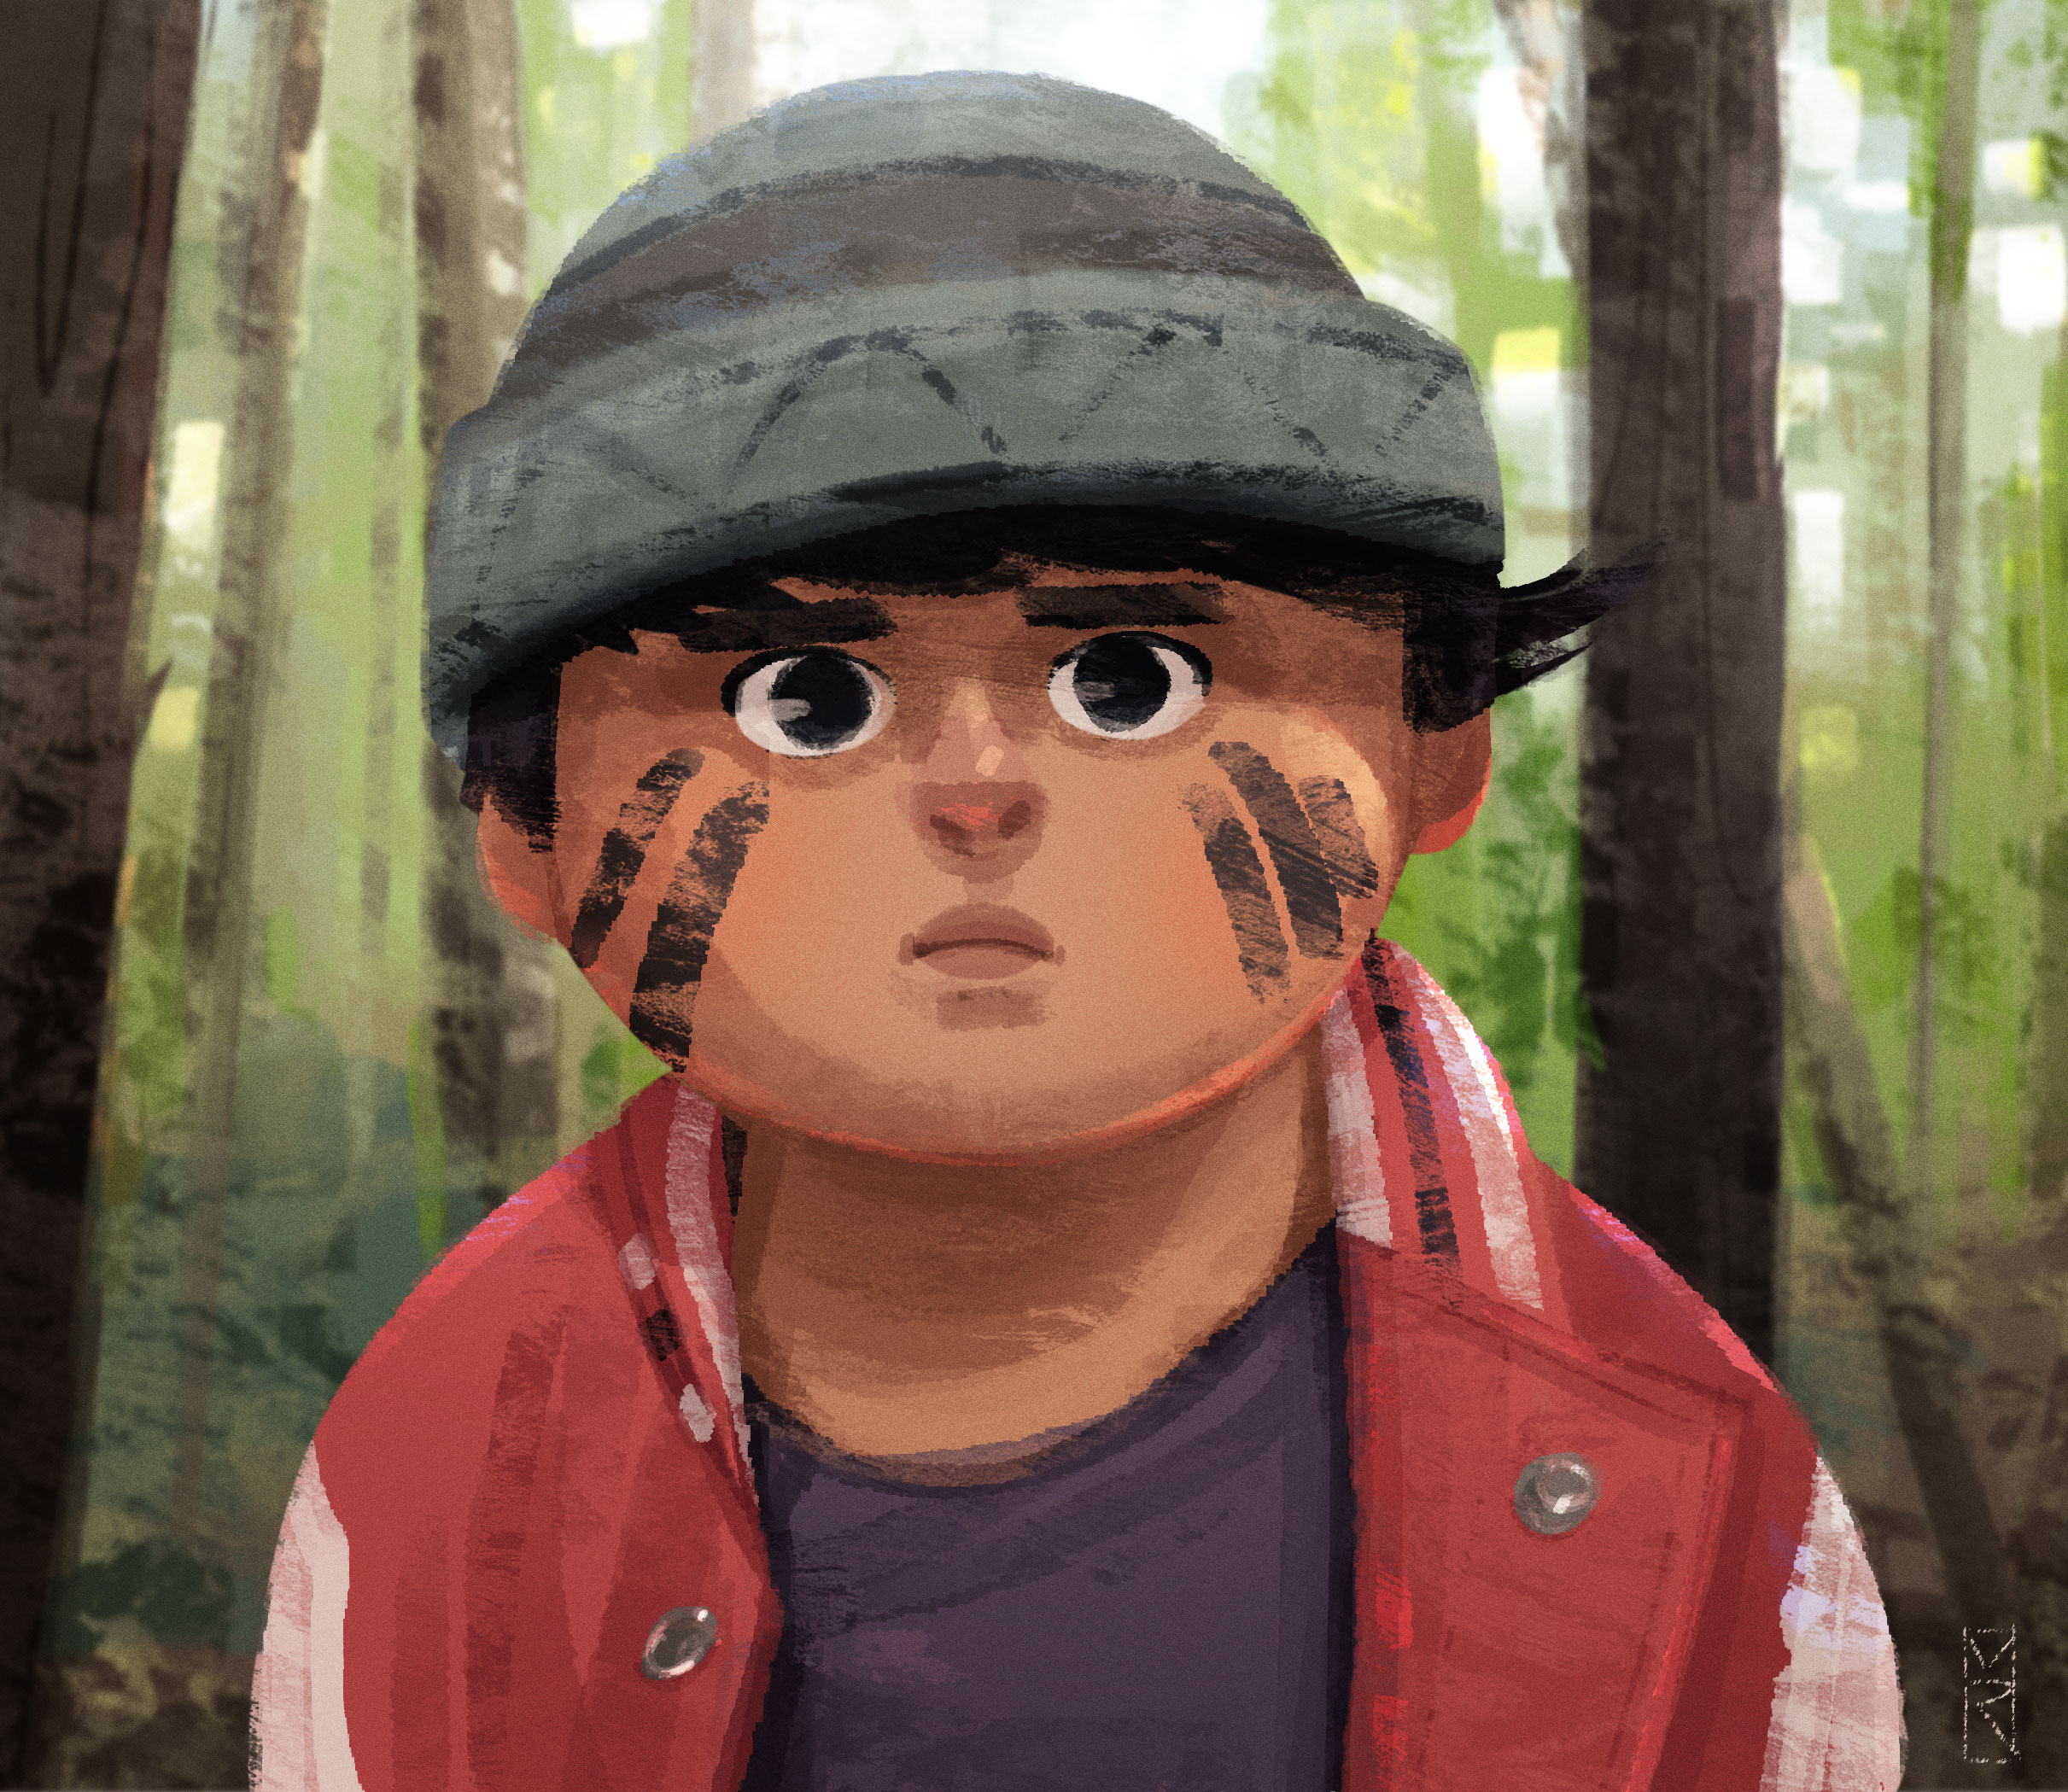 44_Kid_HuntForTheWilderPeople.jpg